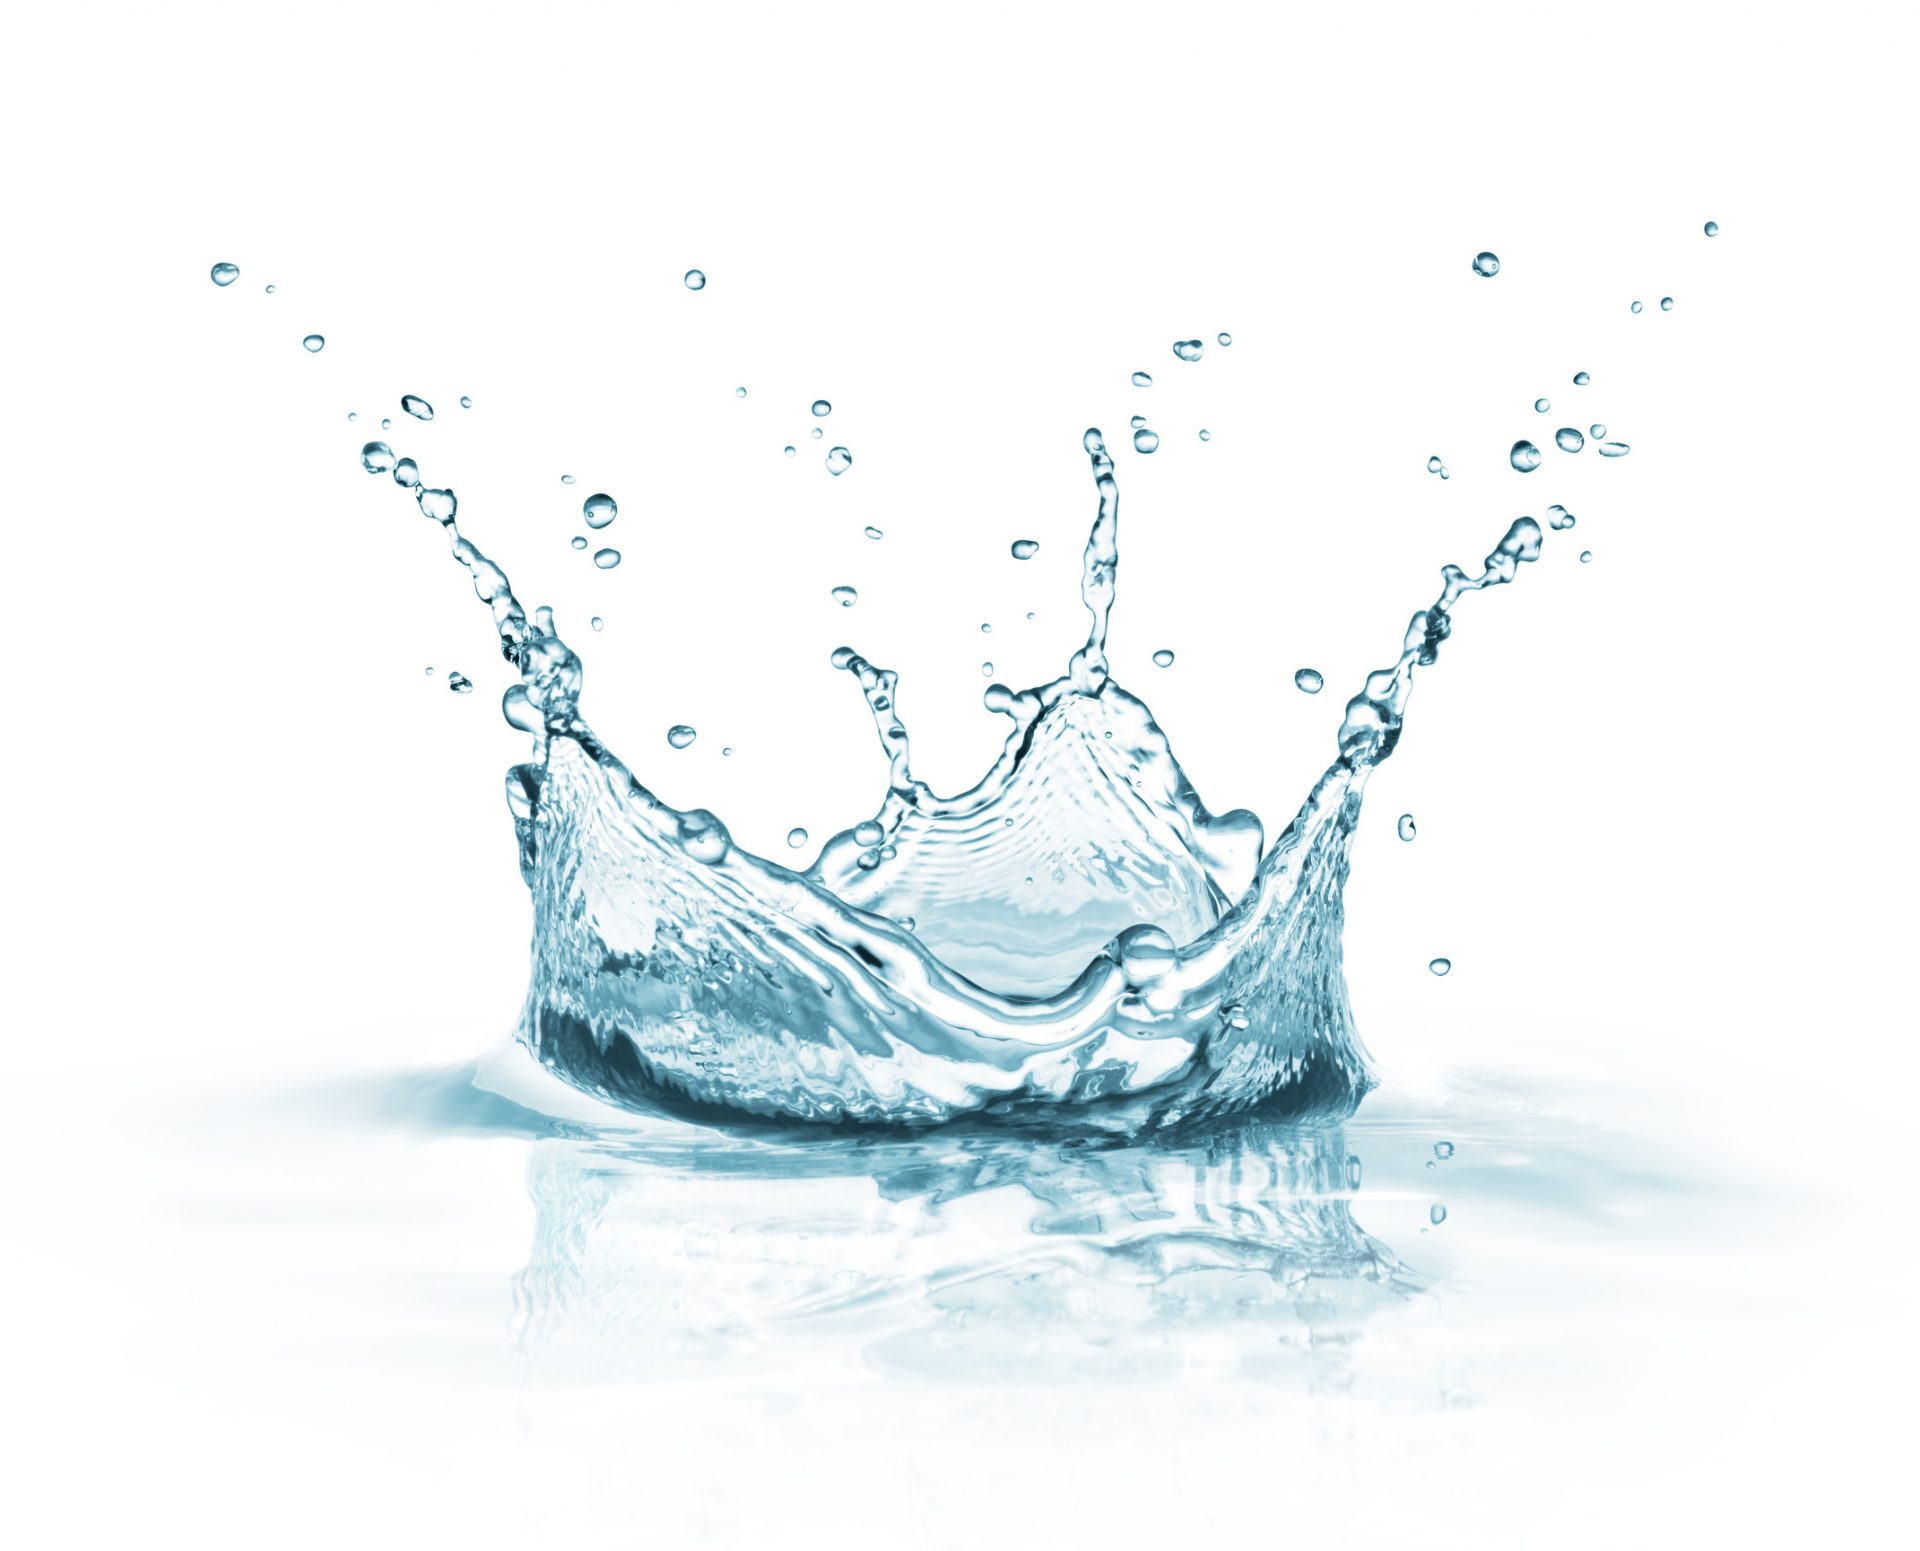 water splash on white background with reflection